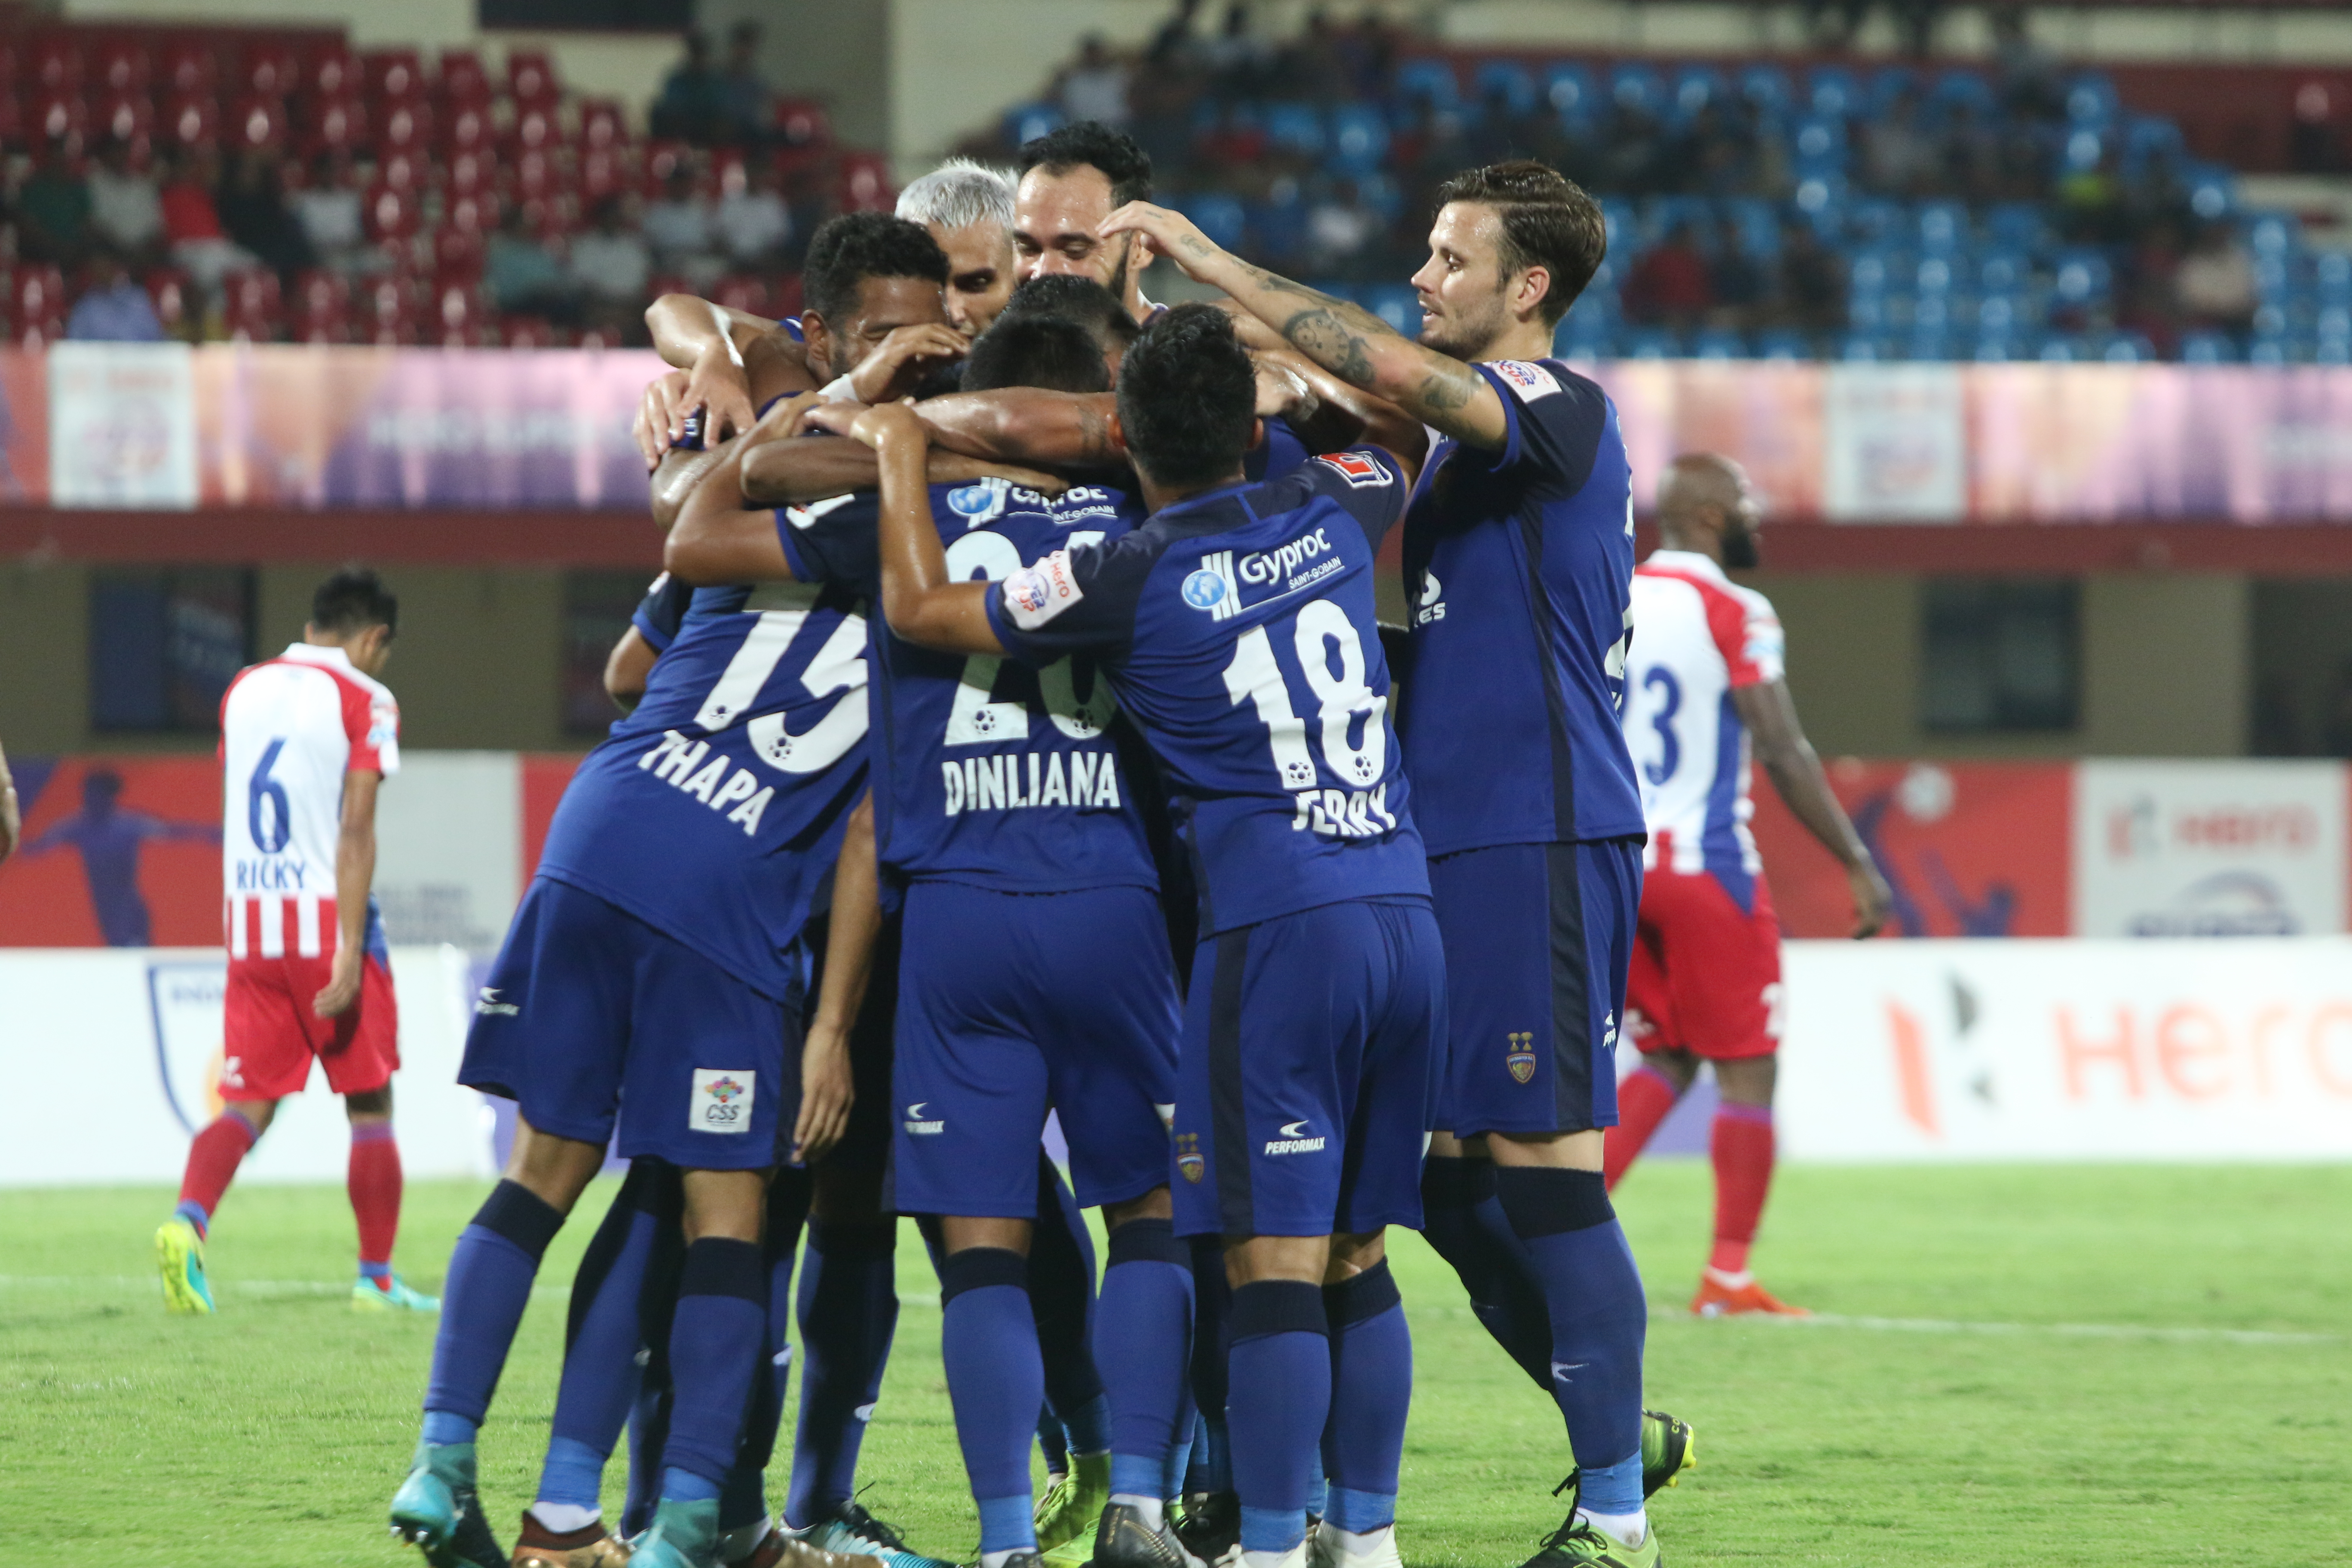 ATK vs Chennaiyin Super Cup 2019